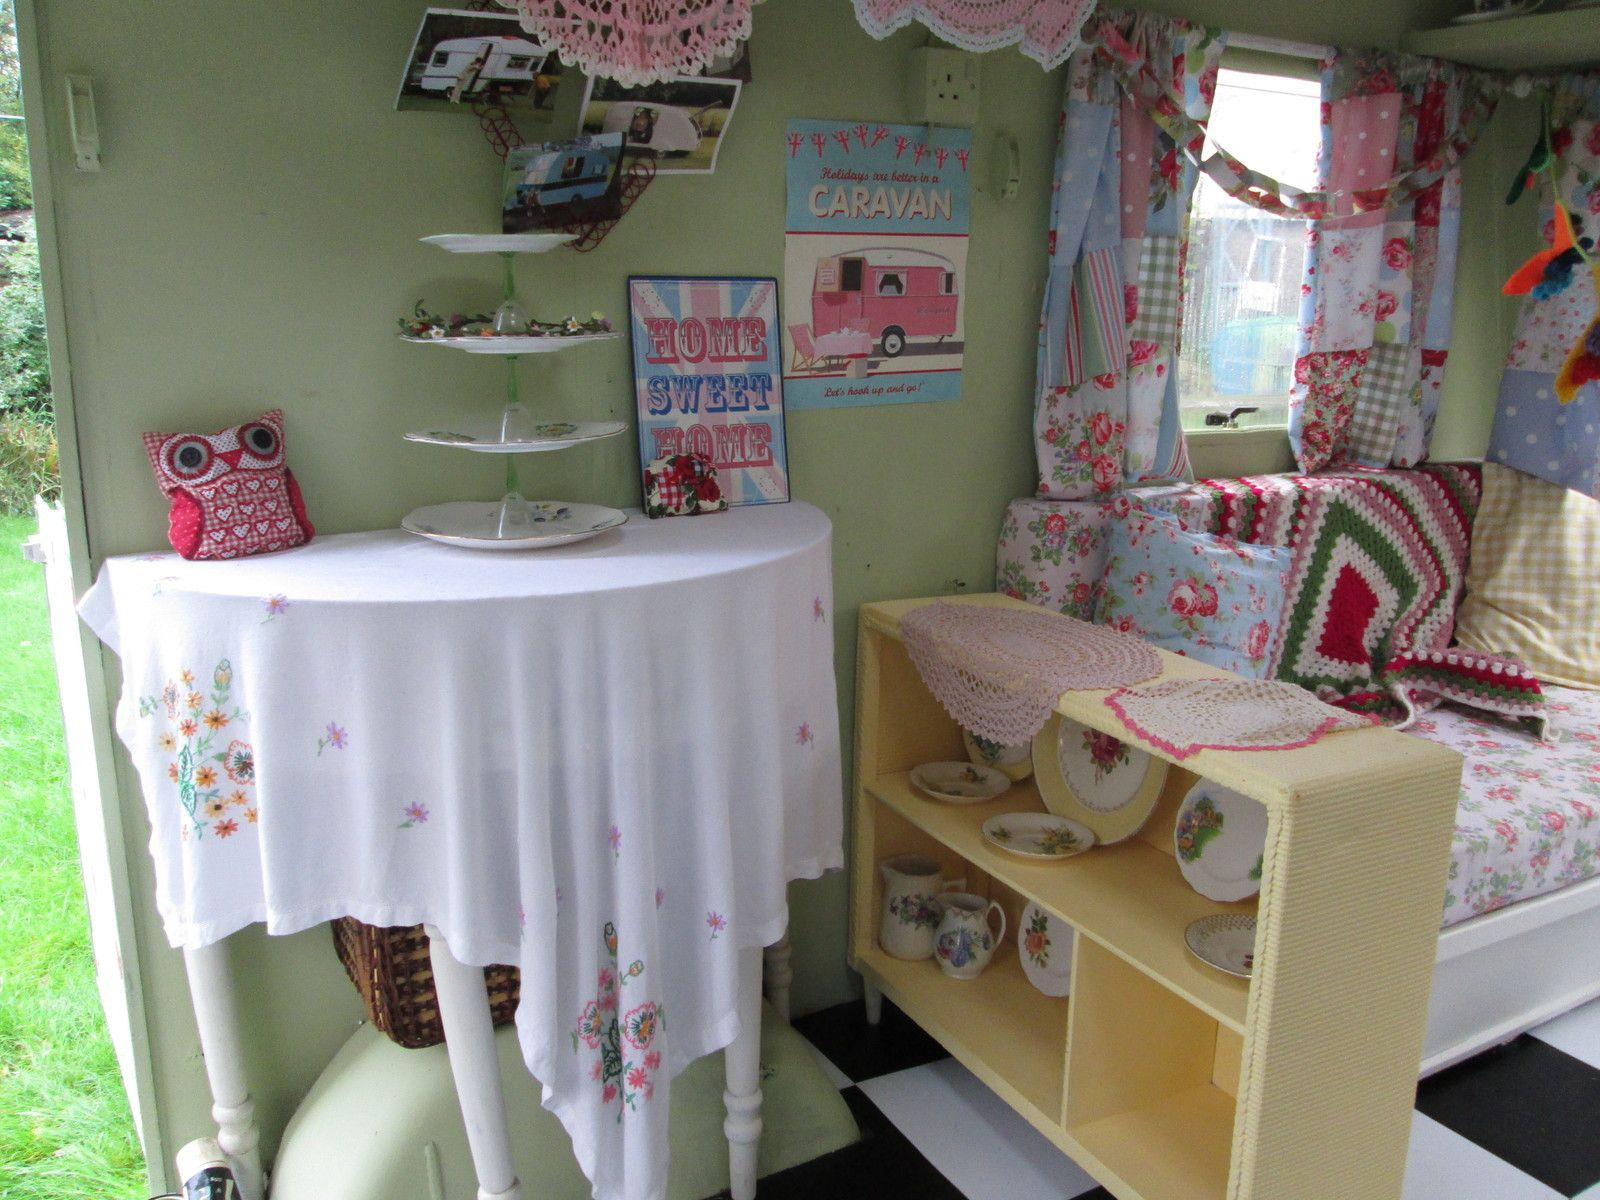 Details About Cath Kidston Vintage Caravan Garden Room Lady Shed Playroom Sewing Room